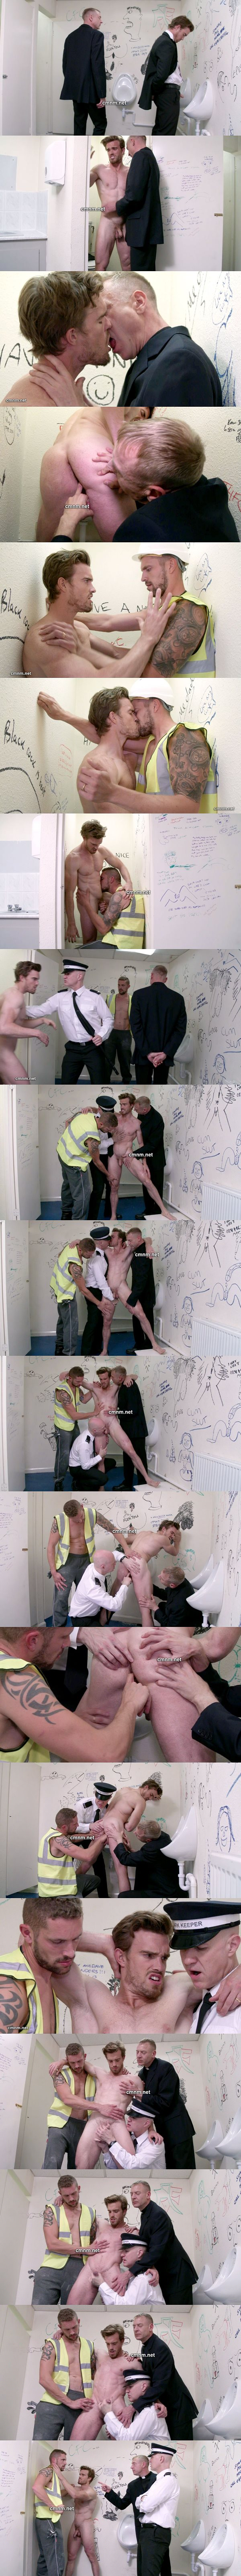 Hot straight office worker Nick finger fucked and jerked off by three pervs in The Park Toilets at Cmnm 02